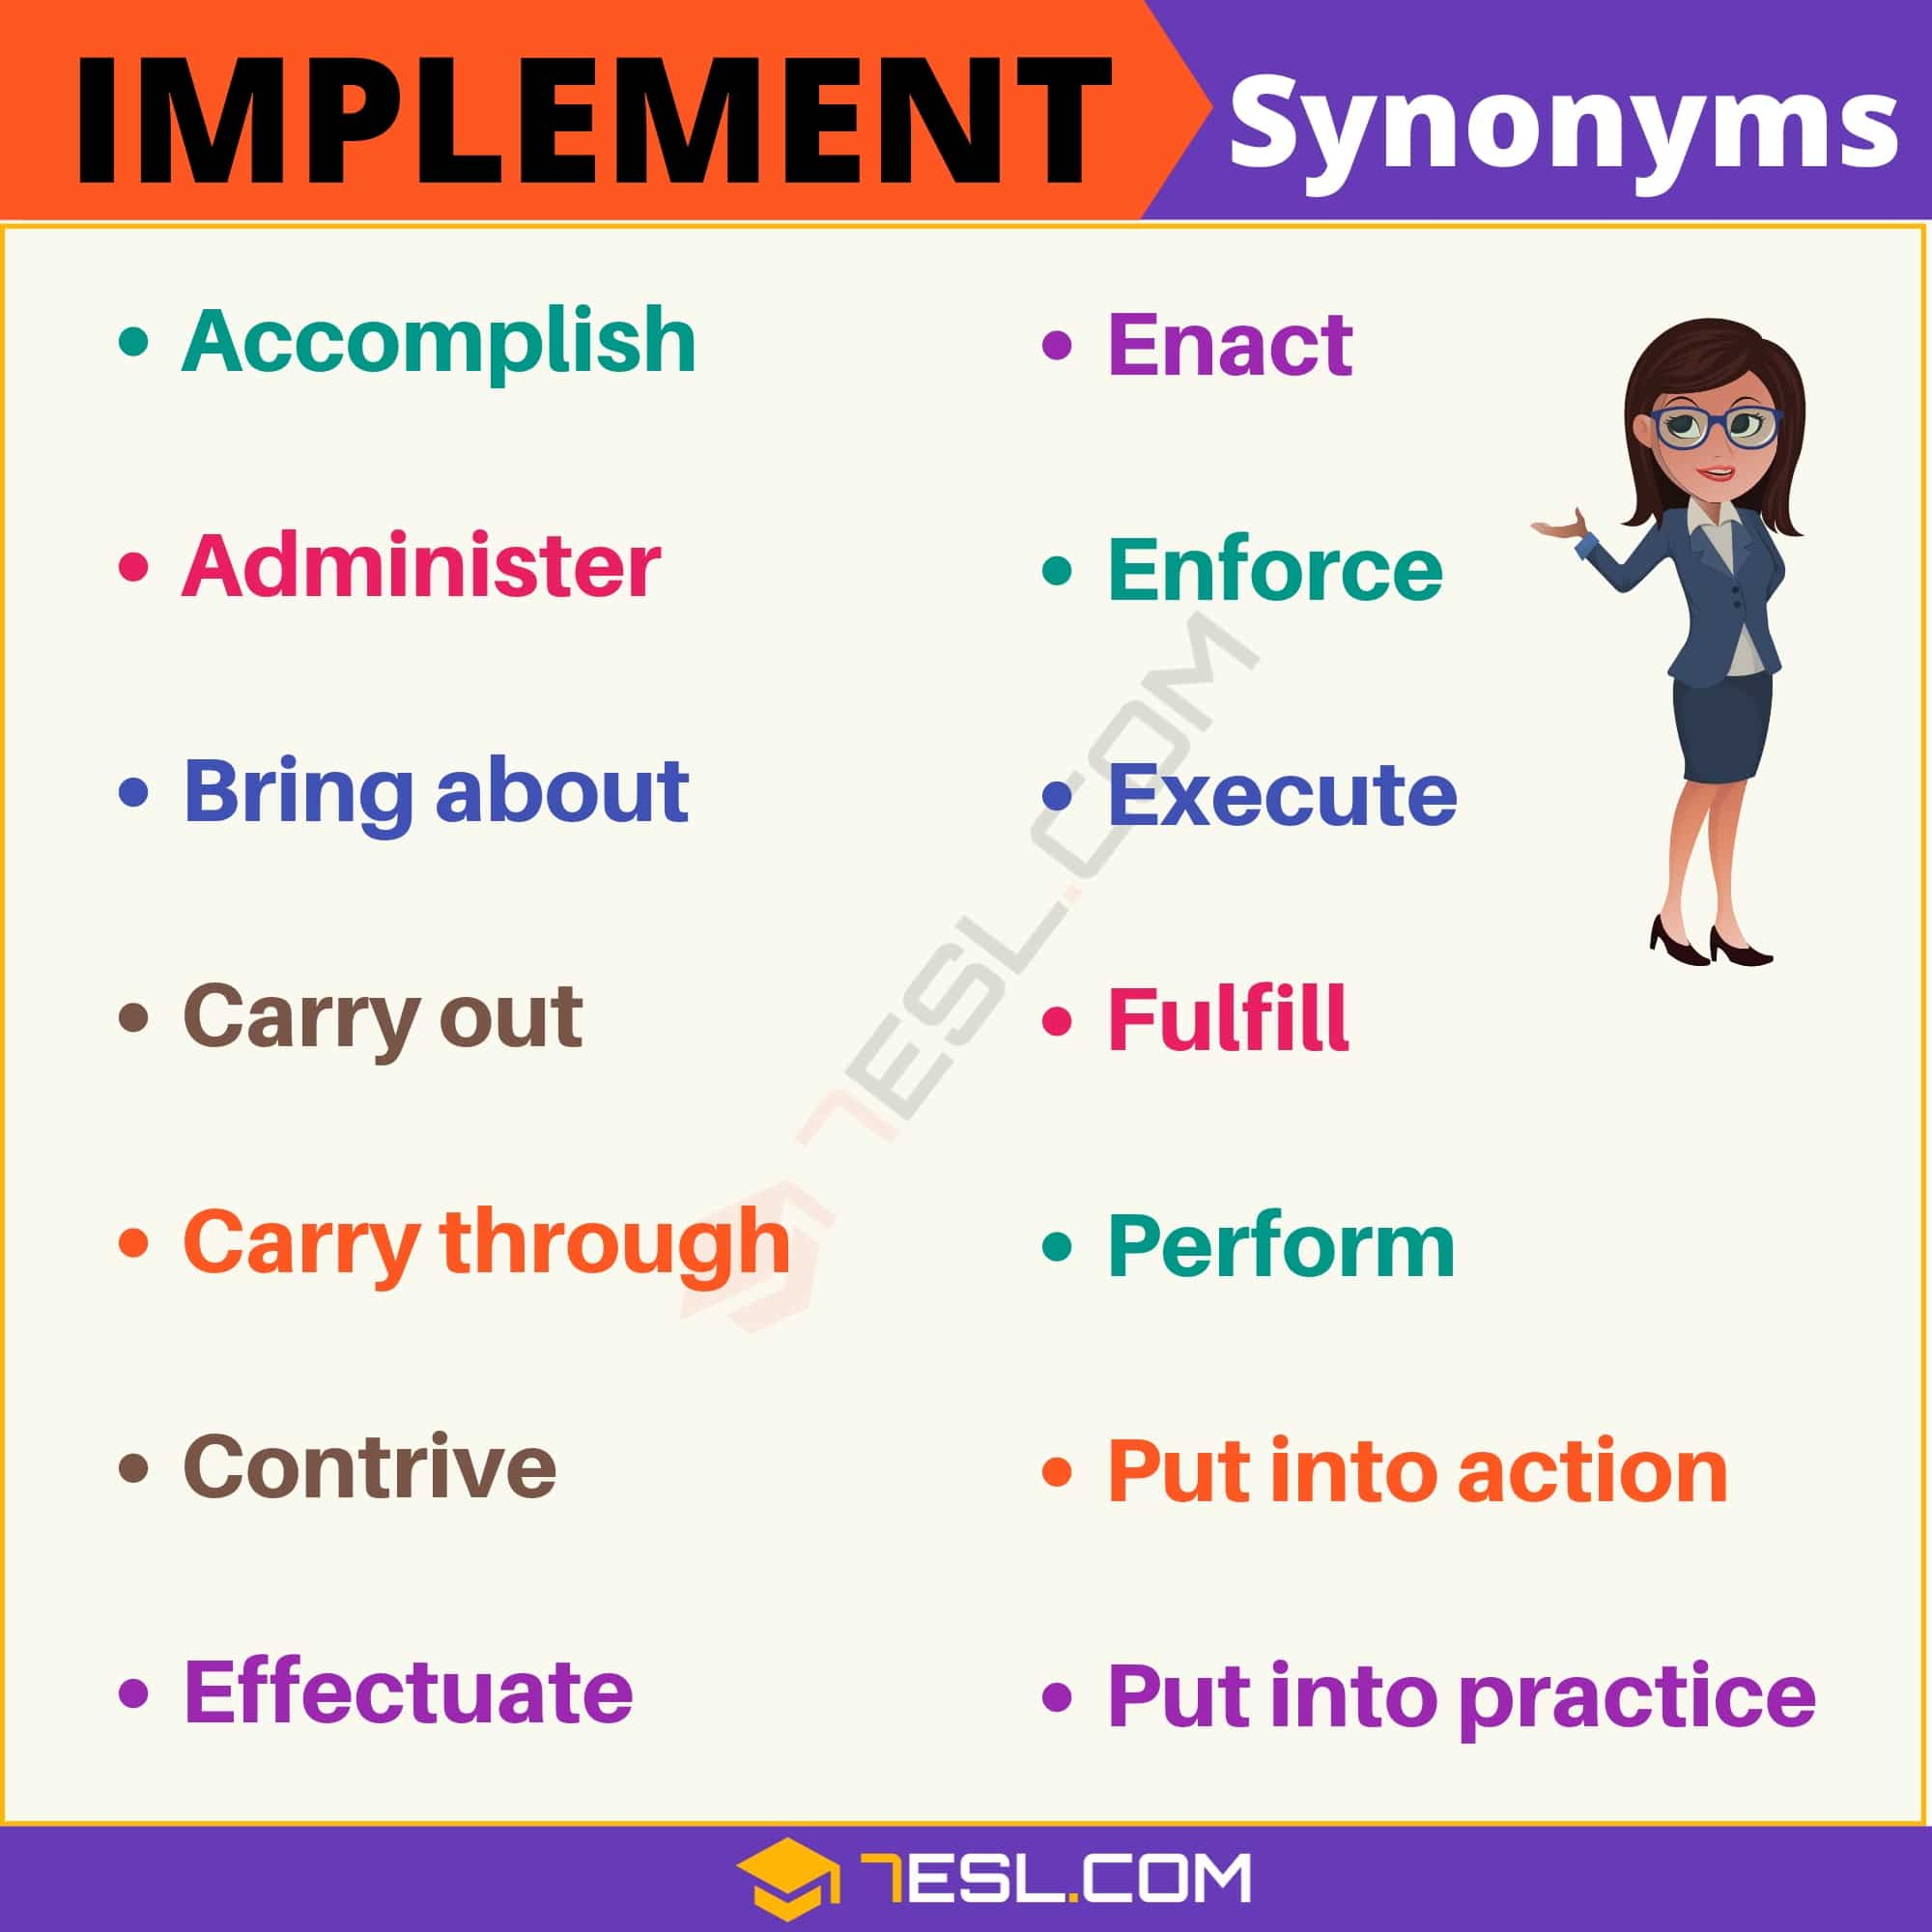 IMPLEMENT Synonym: List of 15 Synonyms for Implement with Useful Examples